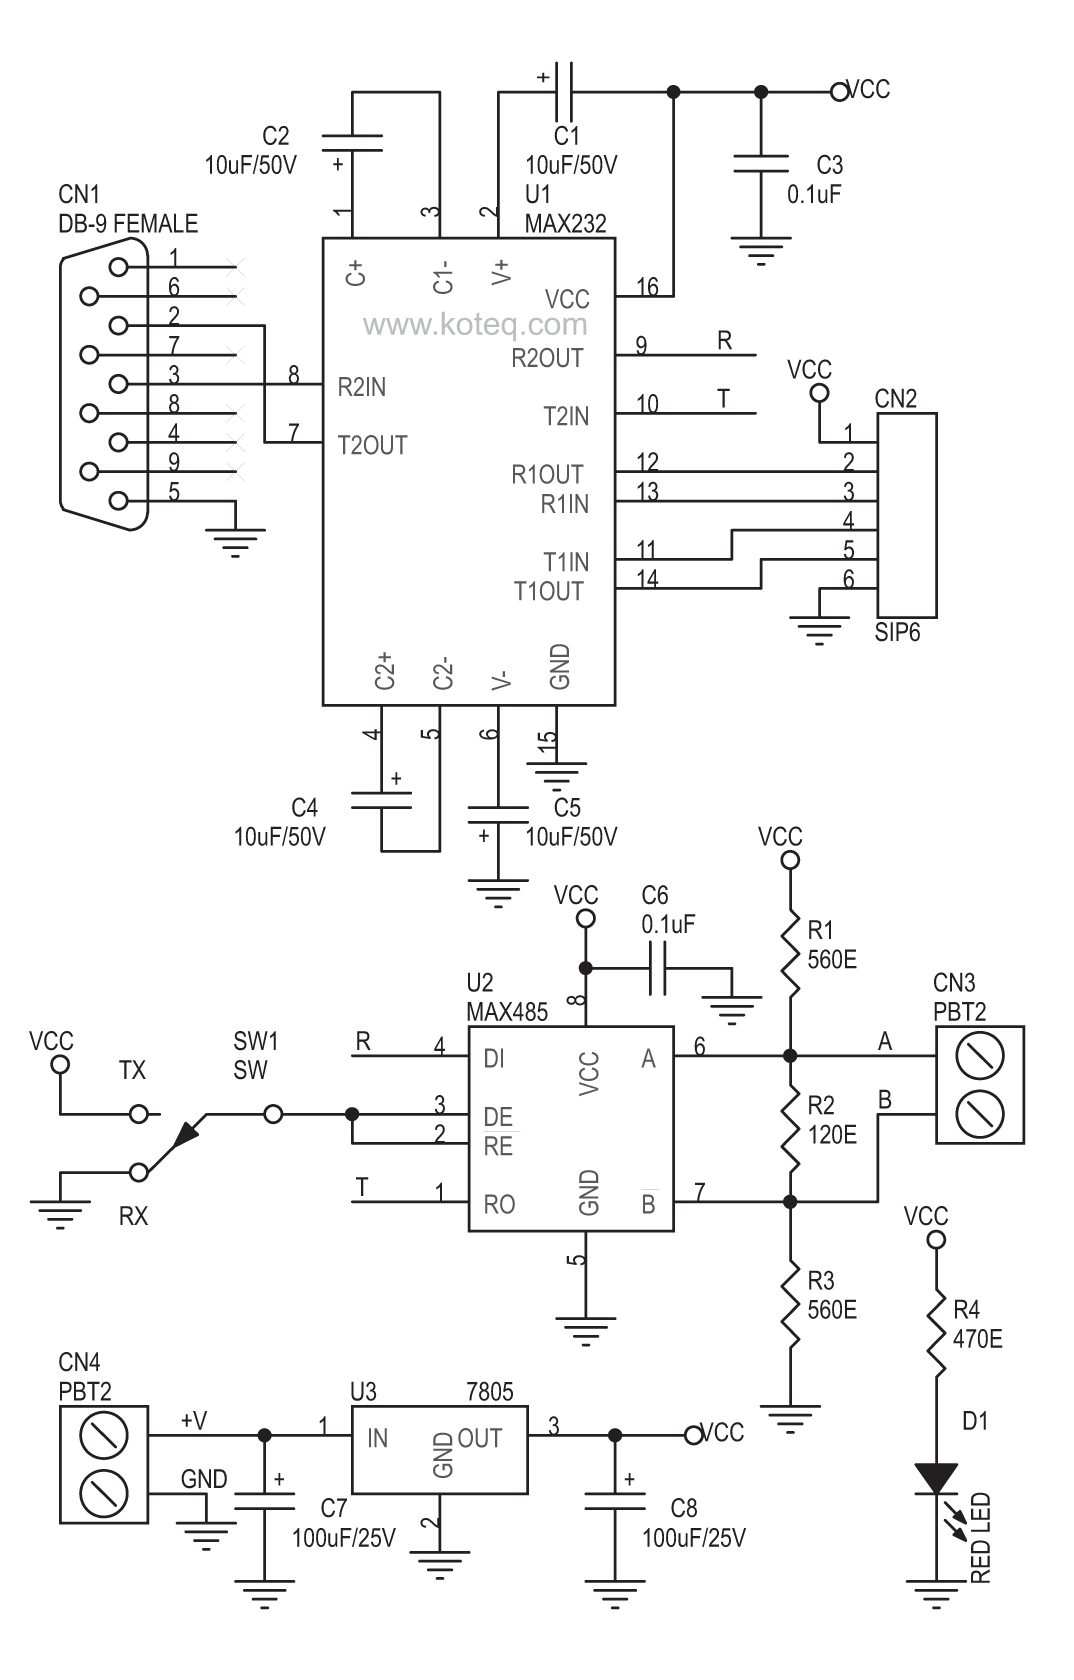 rs232 to rs485 converter diagram   32 wiring diagram